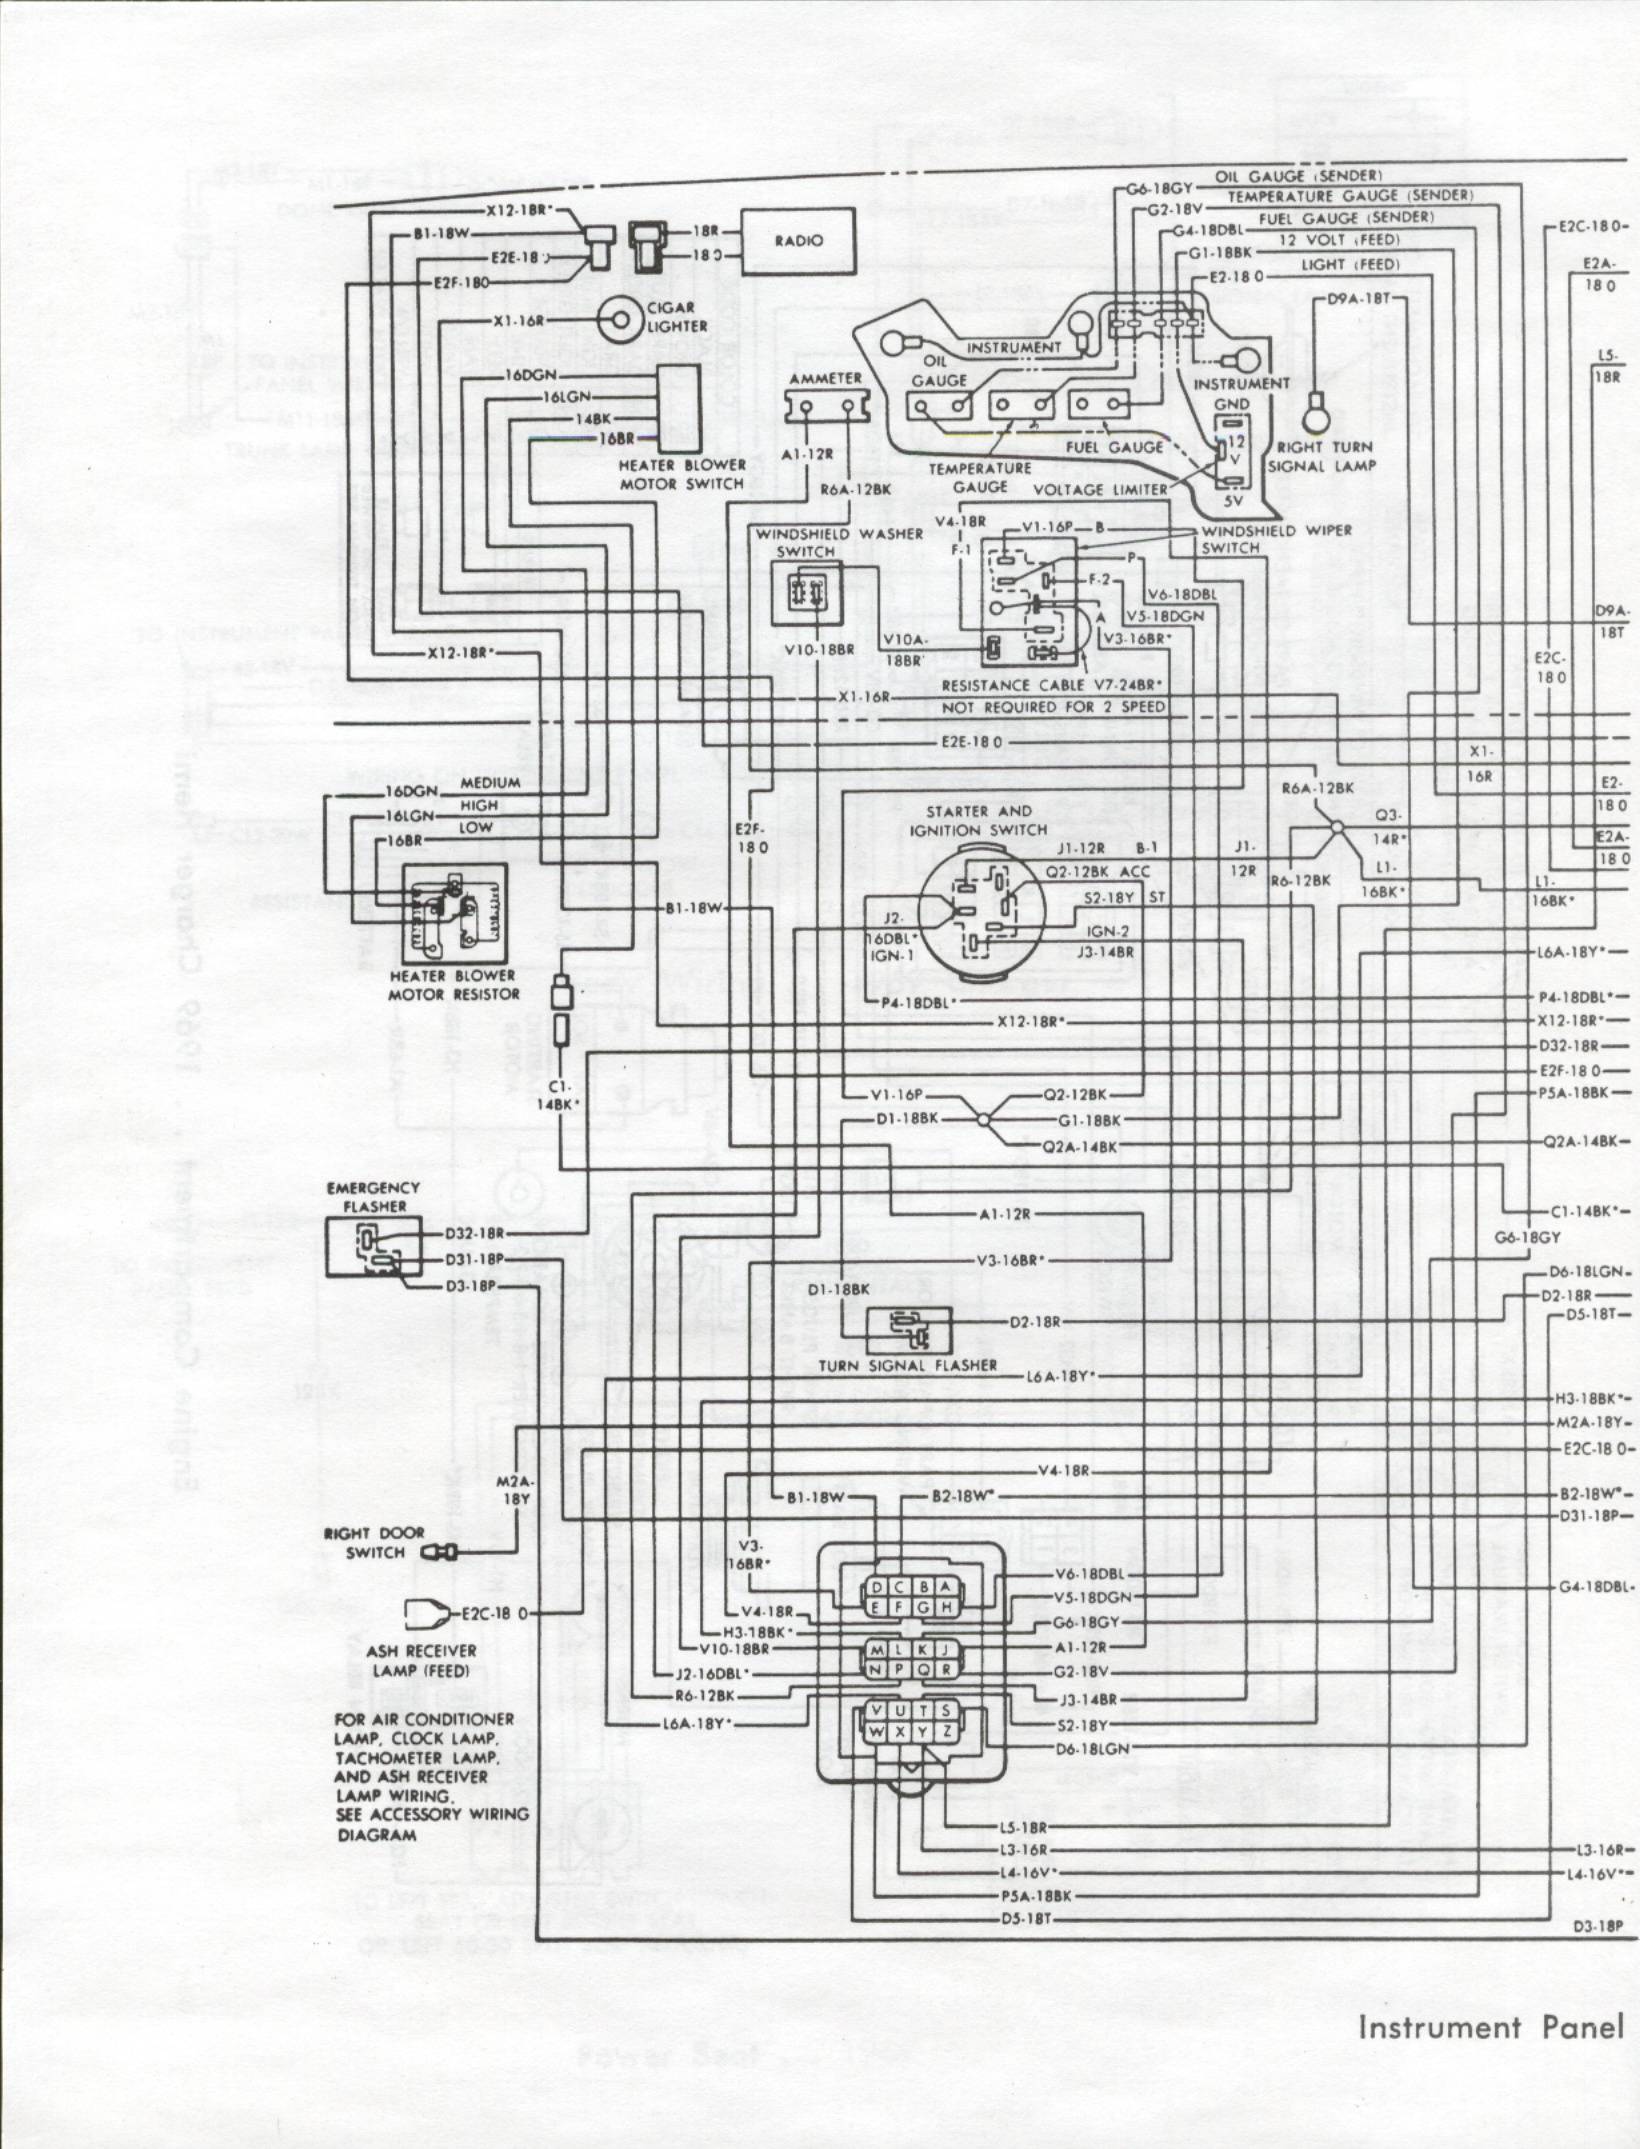 1969 Dodge Charger Instrument Panel Wiring Diagram Intertherm Heater Wiring Diagram Bege Wiring Diagram